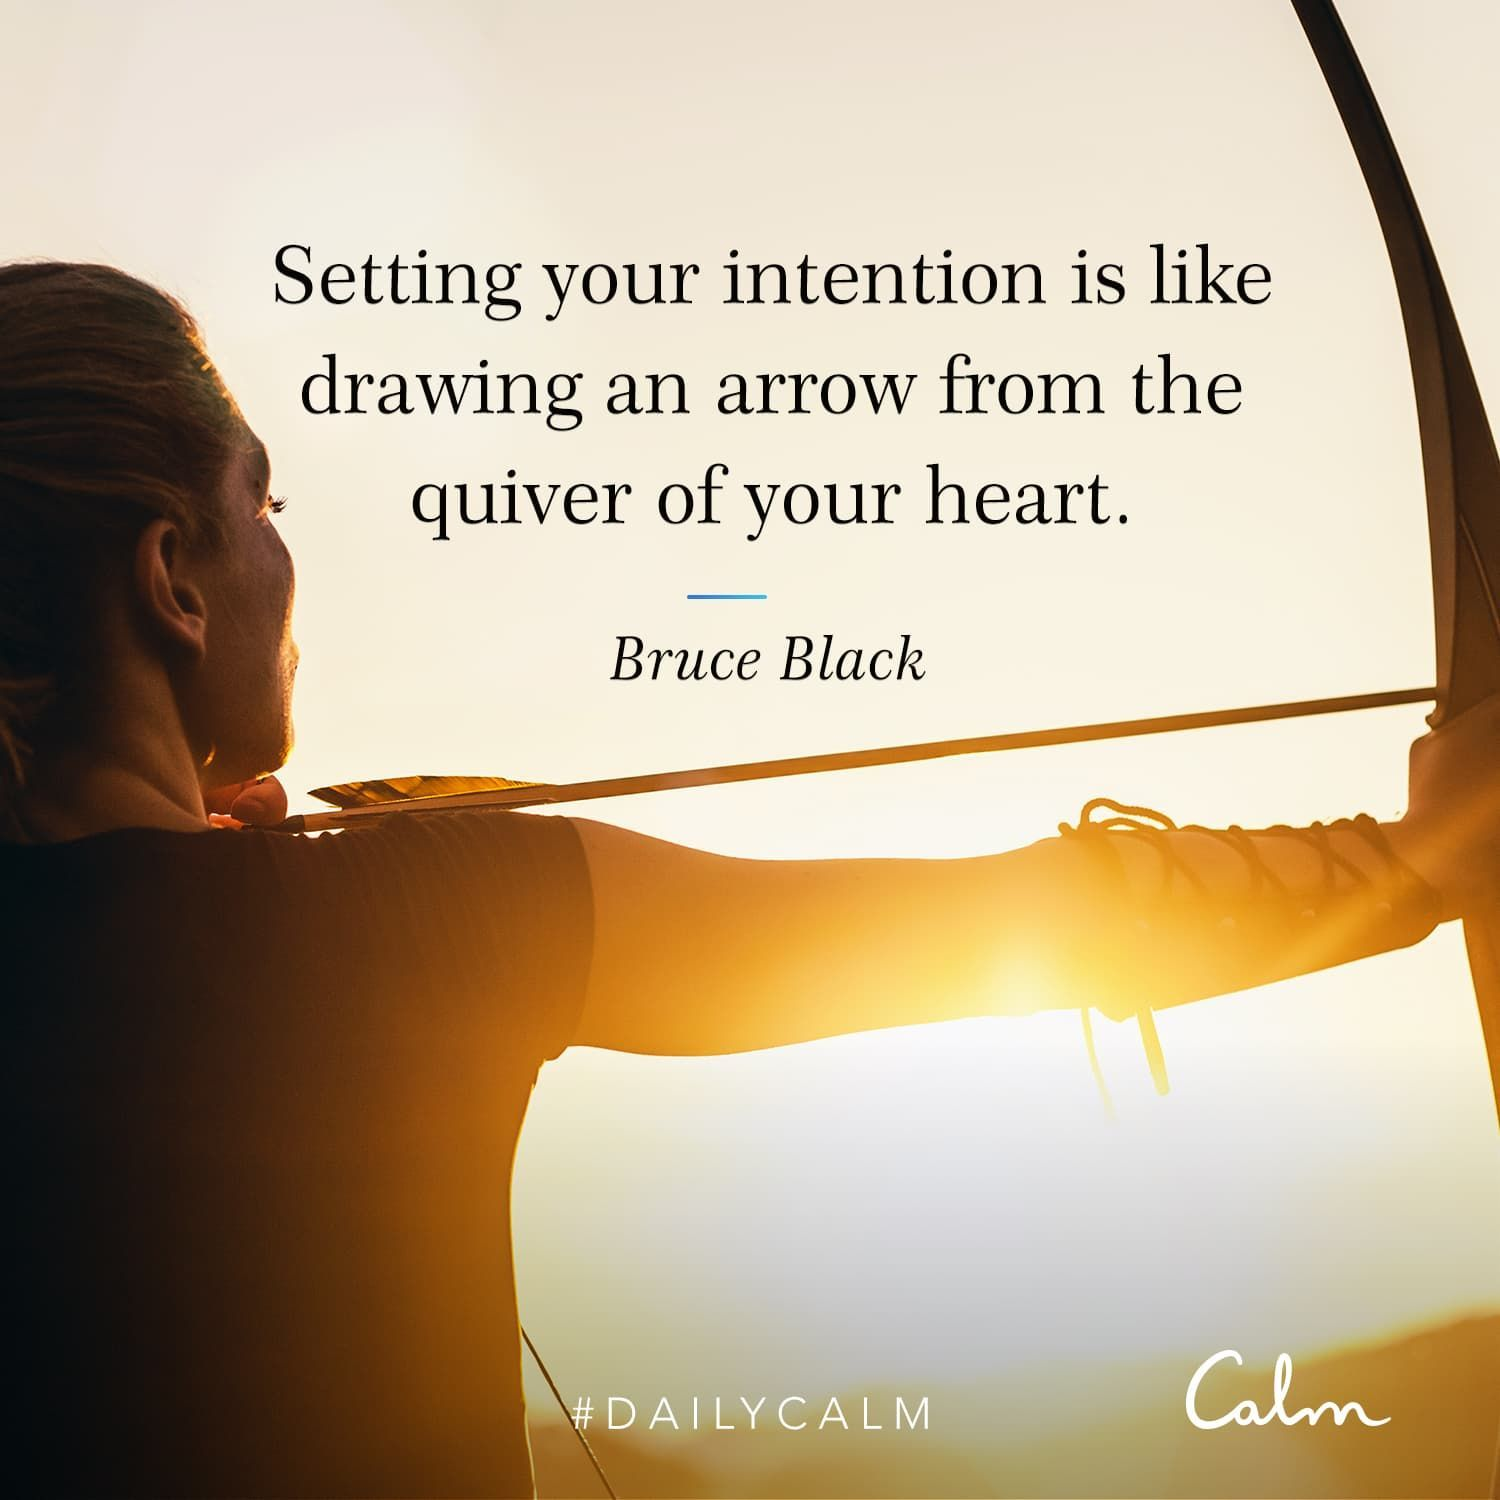 Setting Your Intention Meditation - 4 betting tips